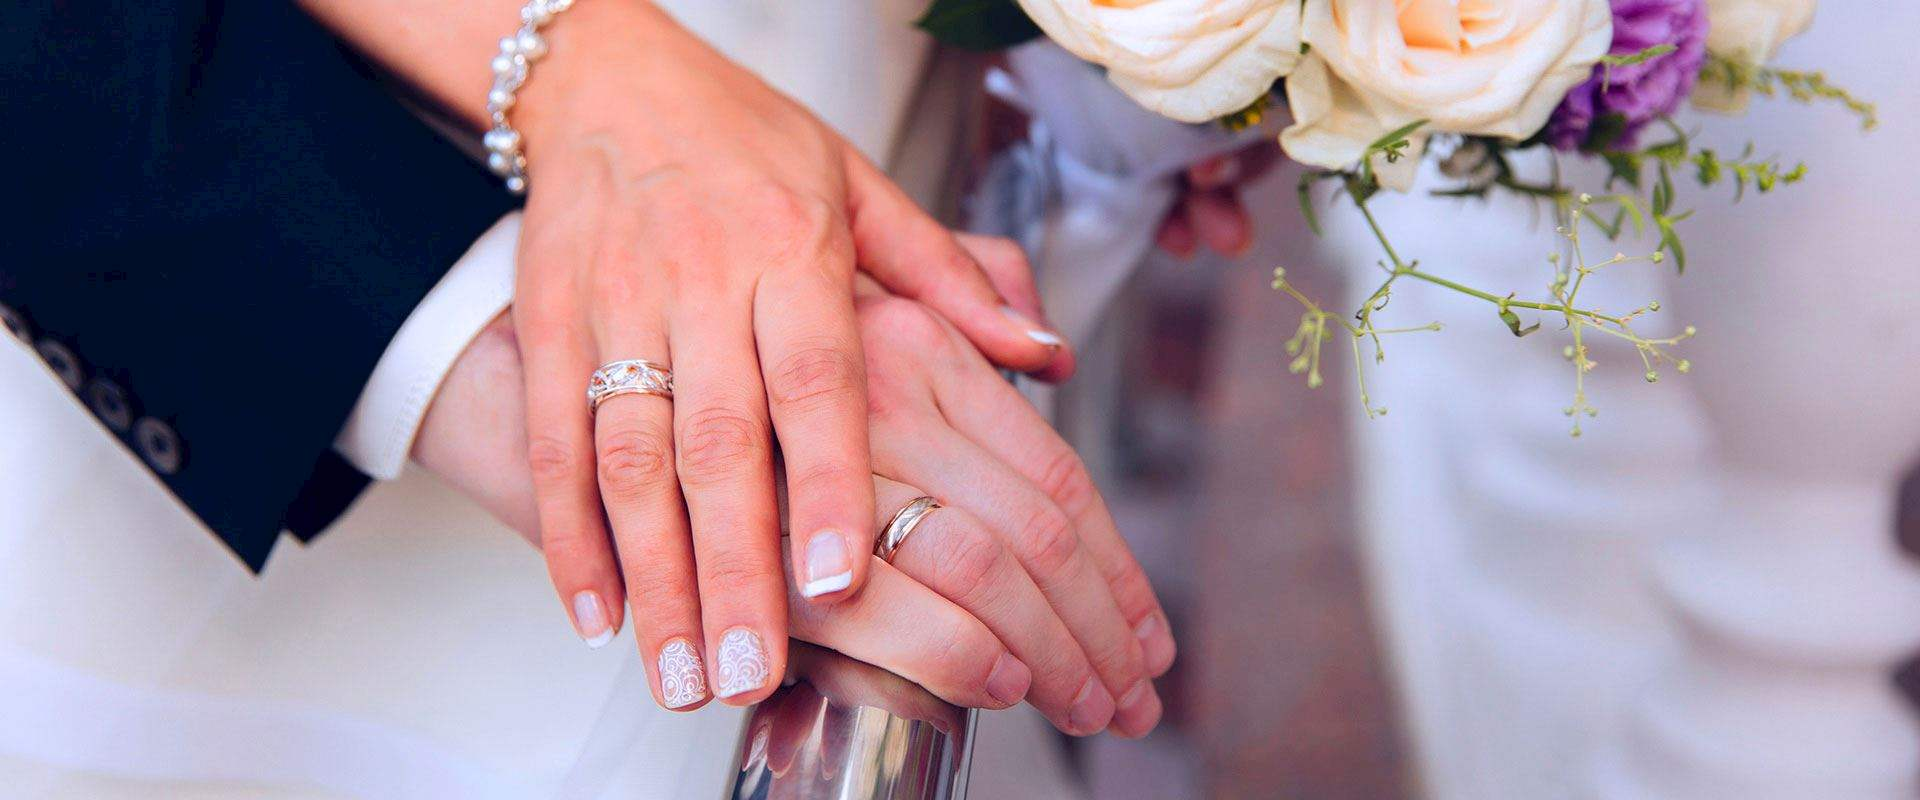 Plan Your Wedding with Daytona Beach Hotel